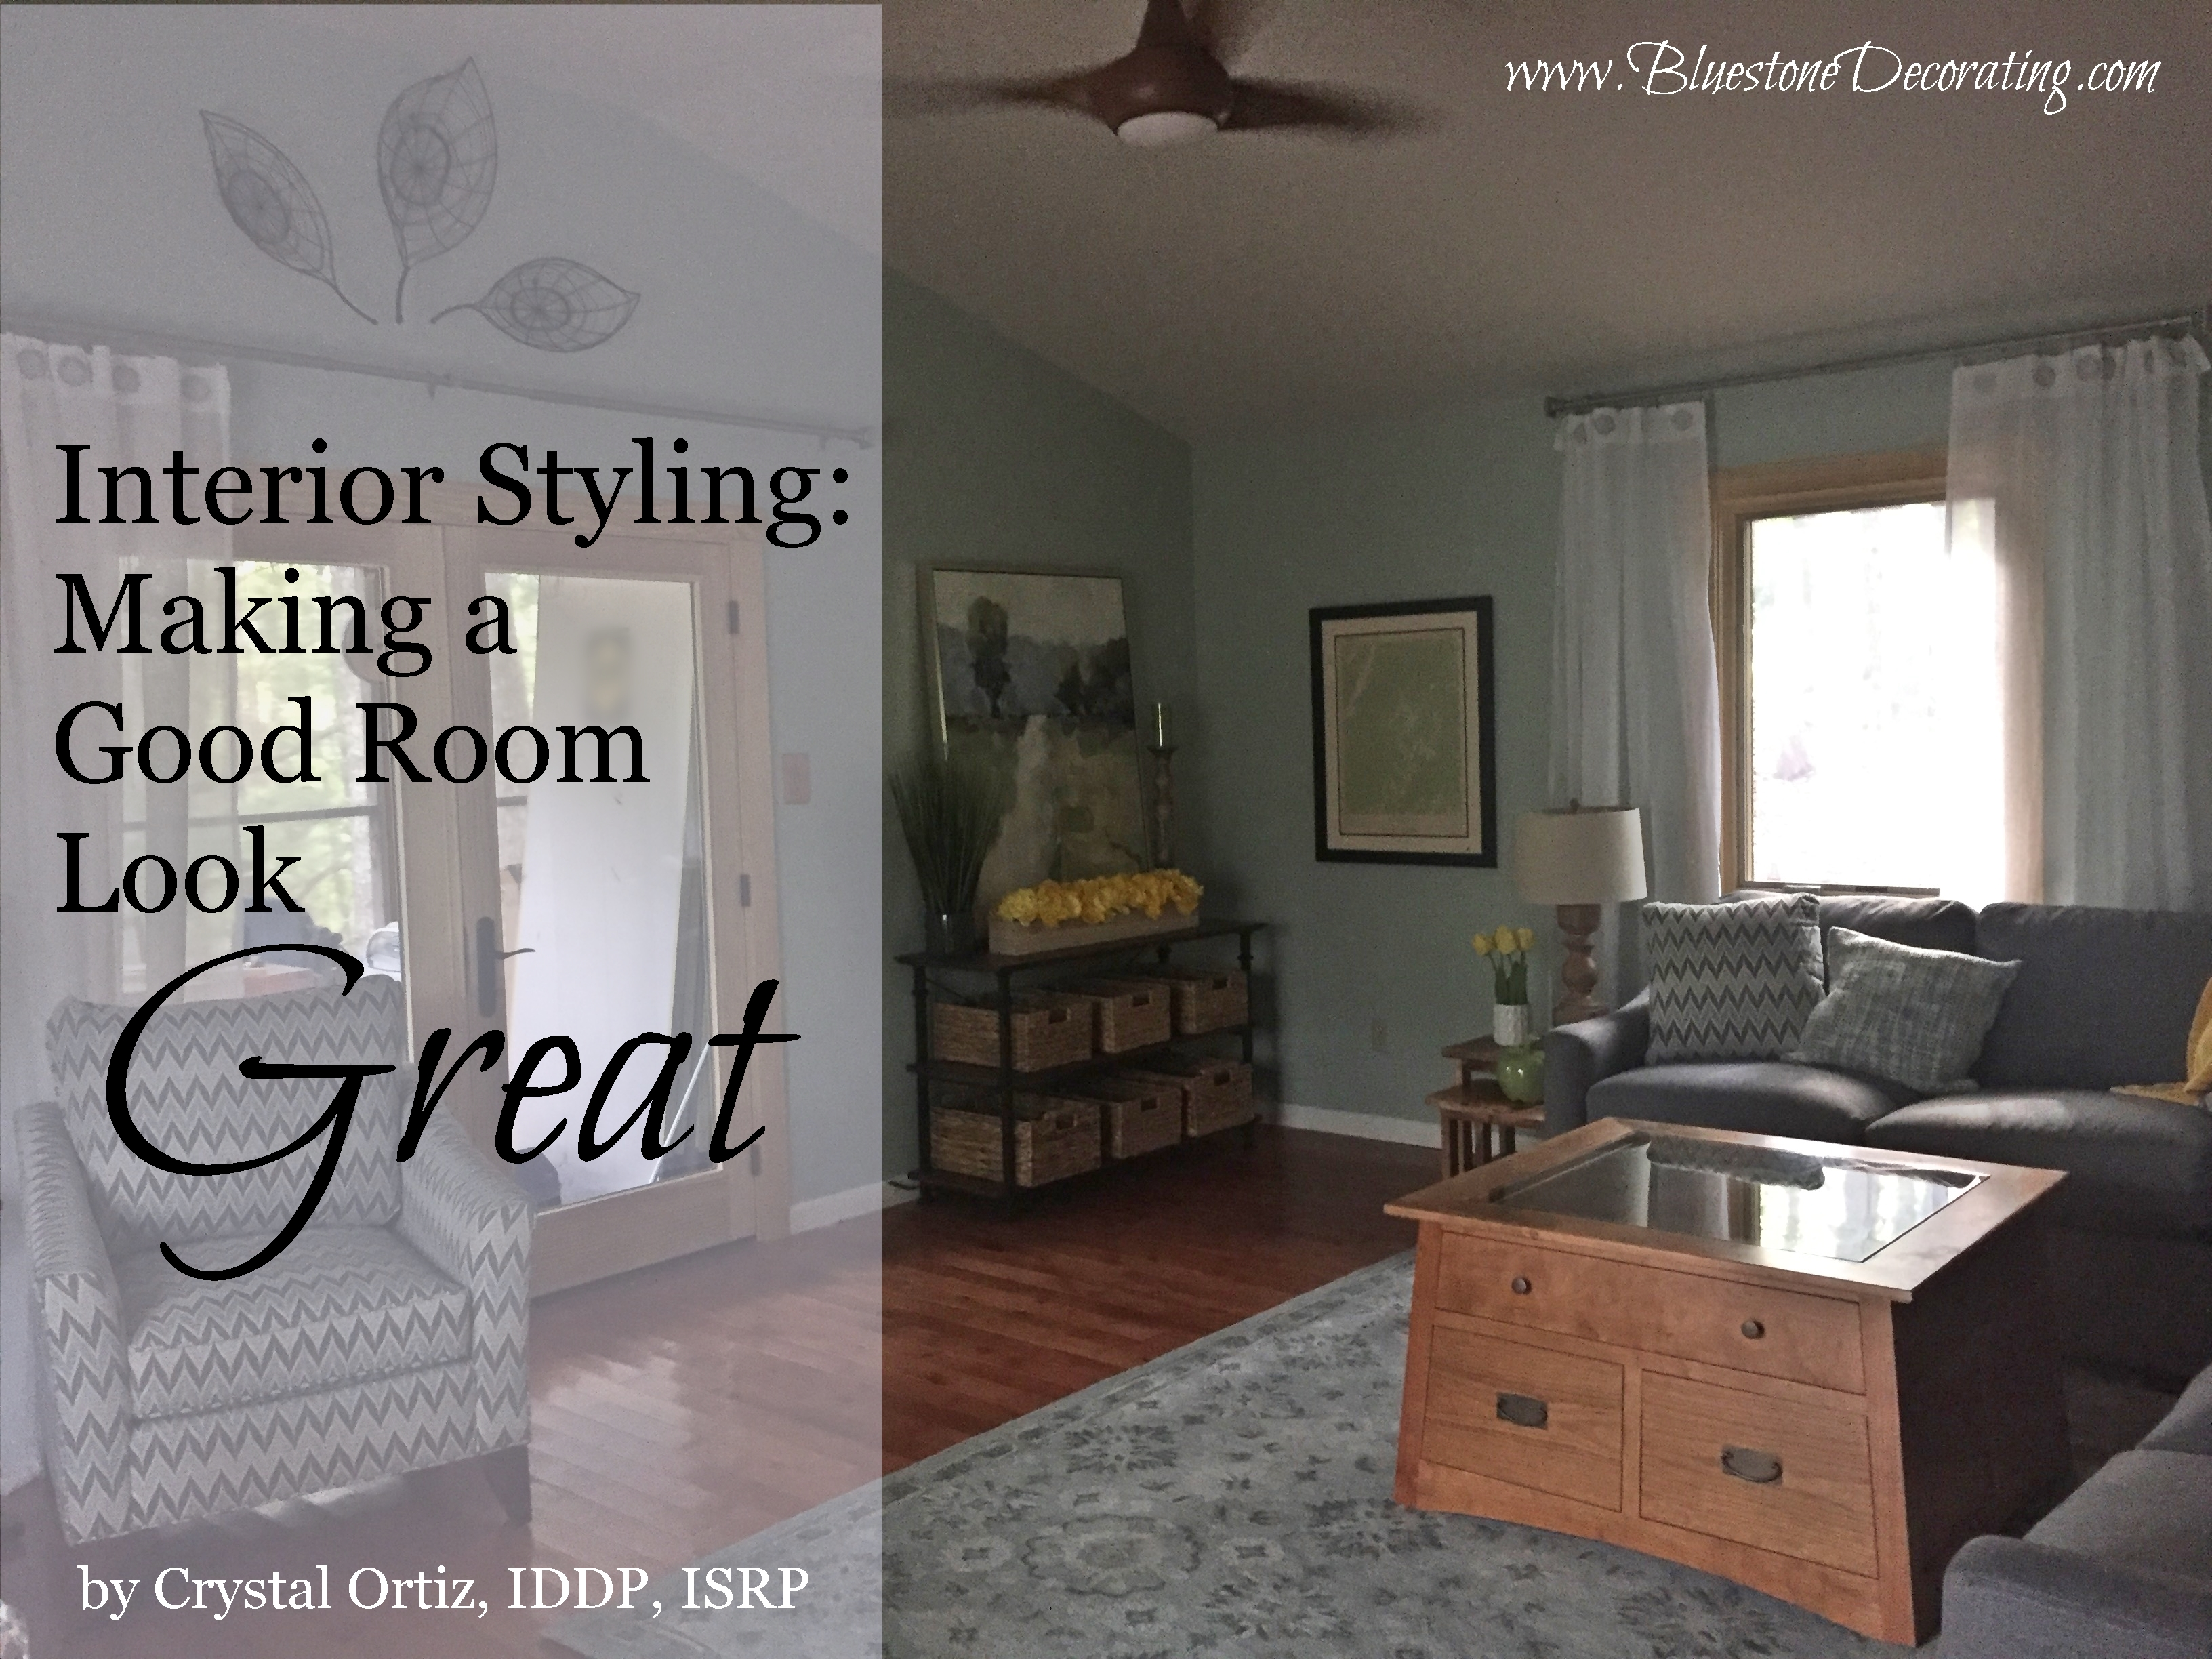 Interior Styling: Making A Good Room Look Great